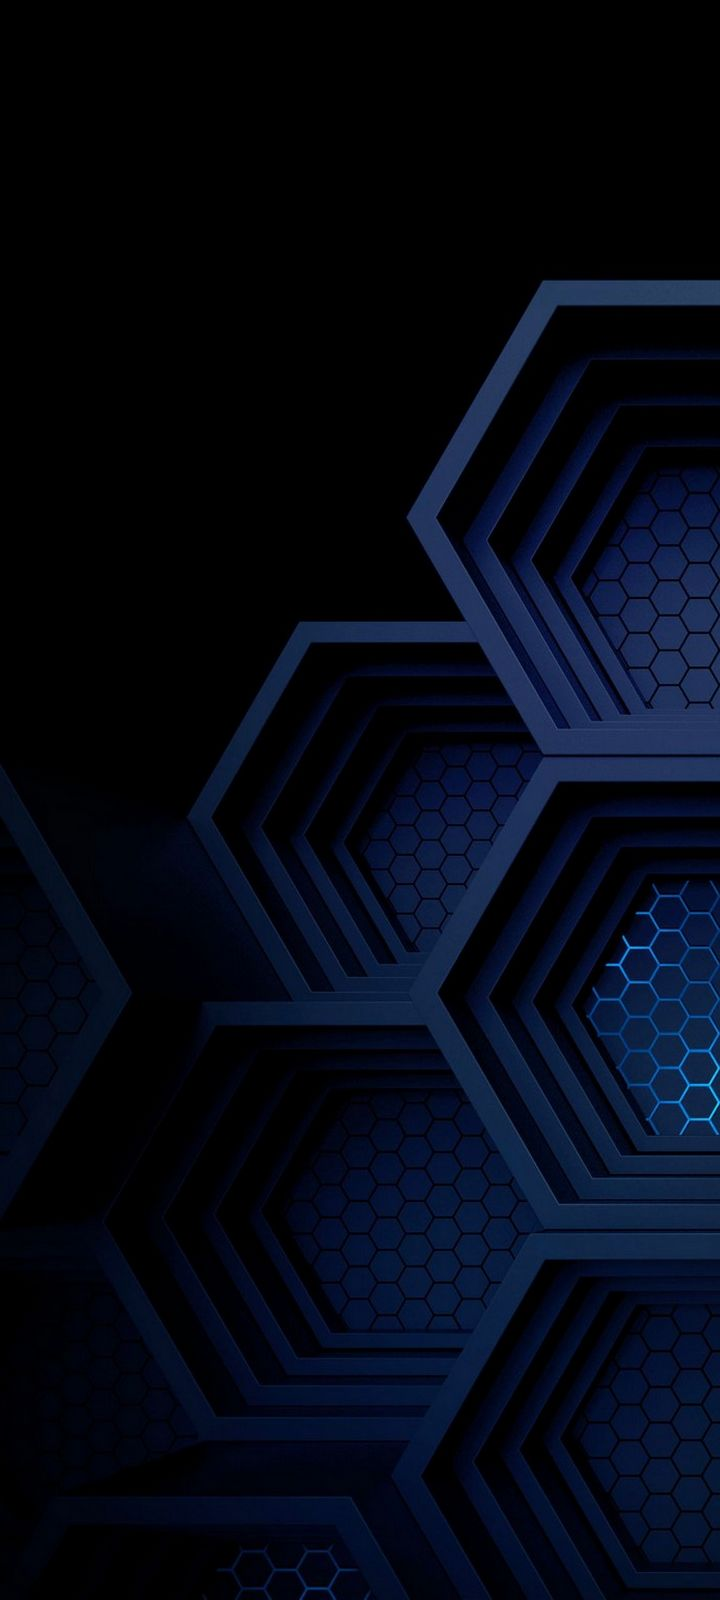 Blue Abstract Wallpaper Black Abstract Backgrounds Blue And Purple